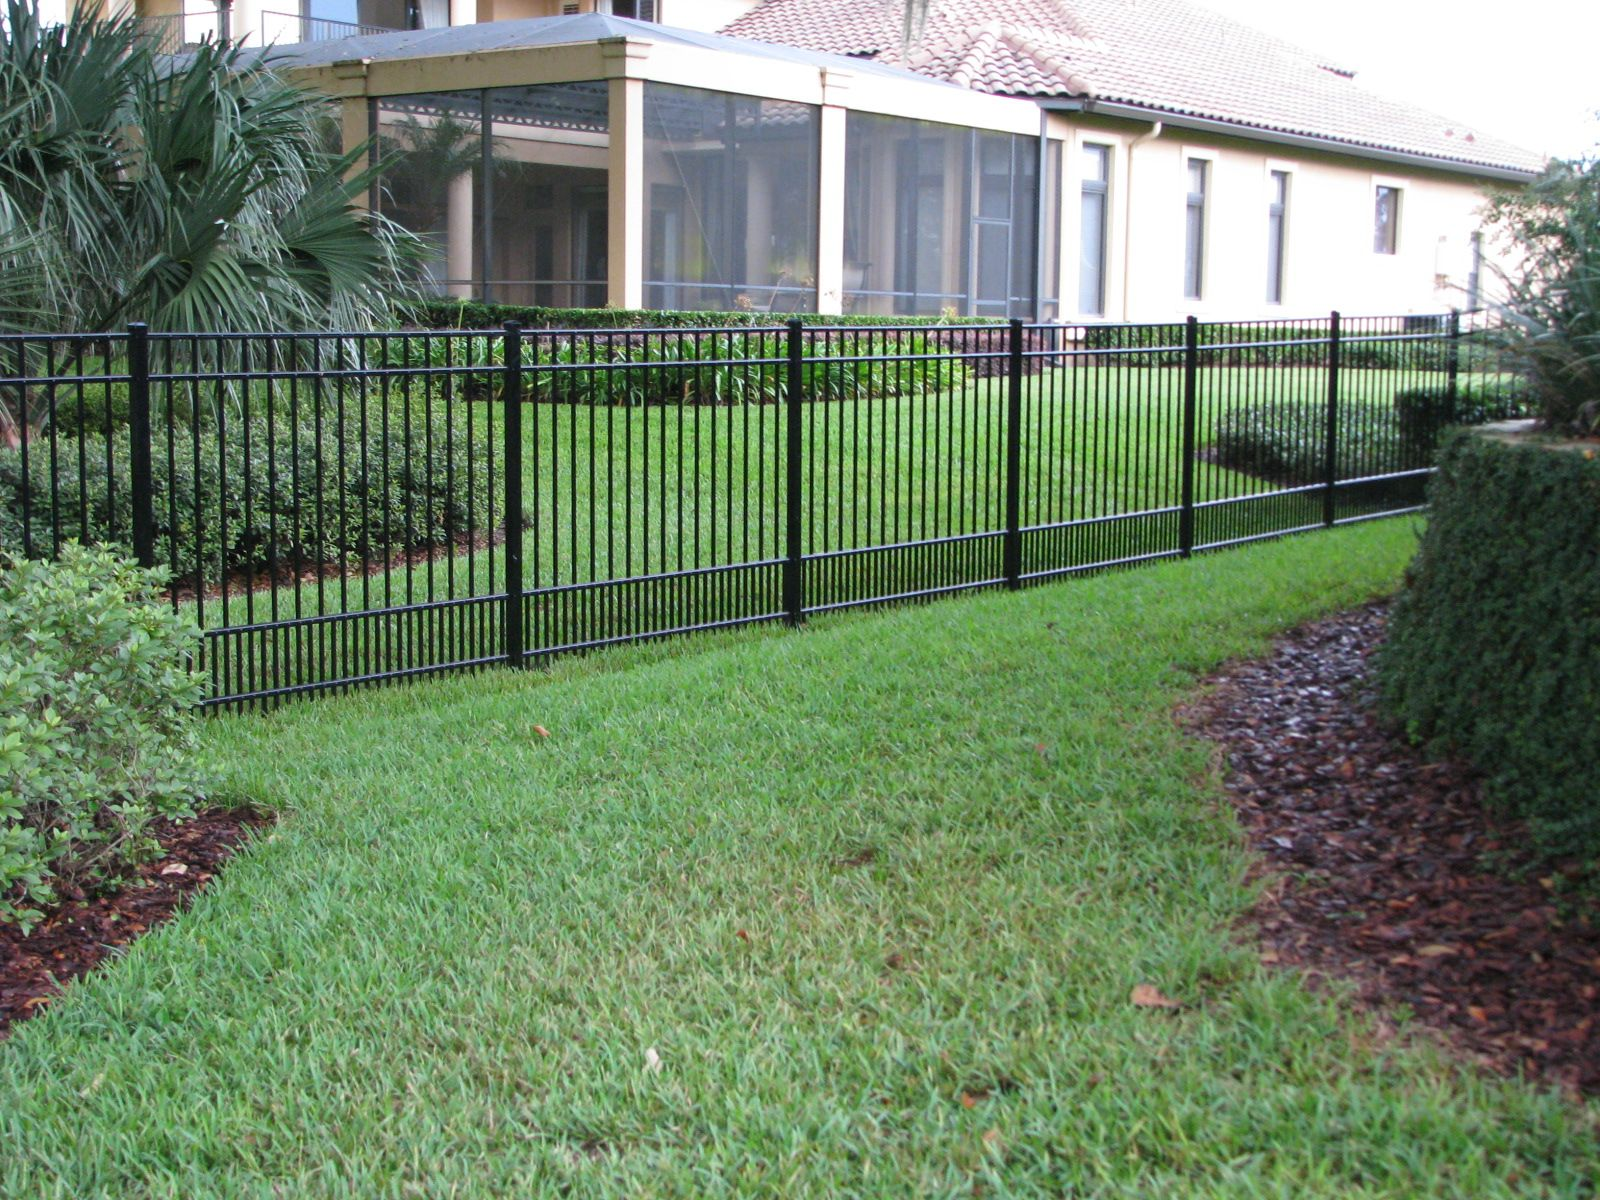 Aluminum Fence Designs Flat top puppy picket aluminum fence by mossy oak fence orlando flat top puppy picket aluminum fence by mossy oak fence orlando melbourne workwithnaturefo